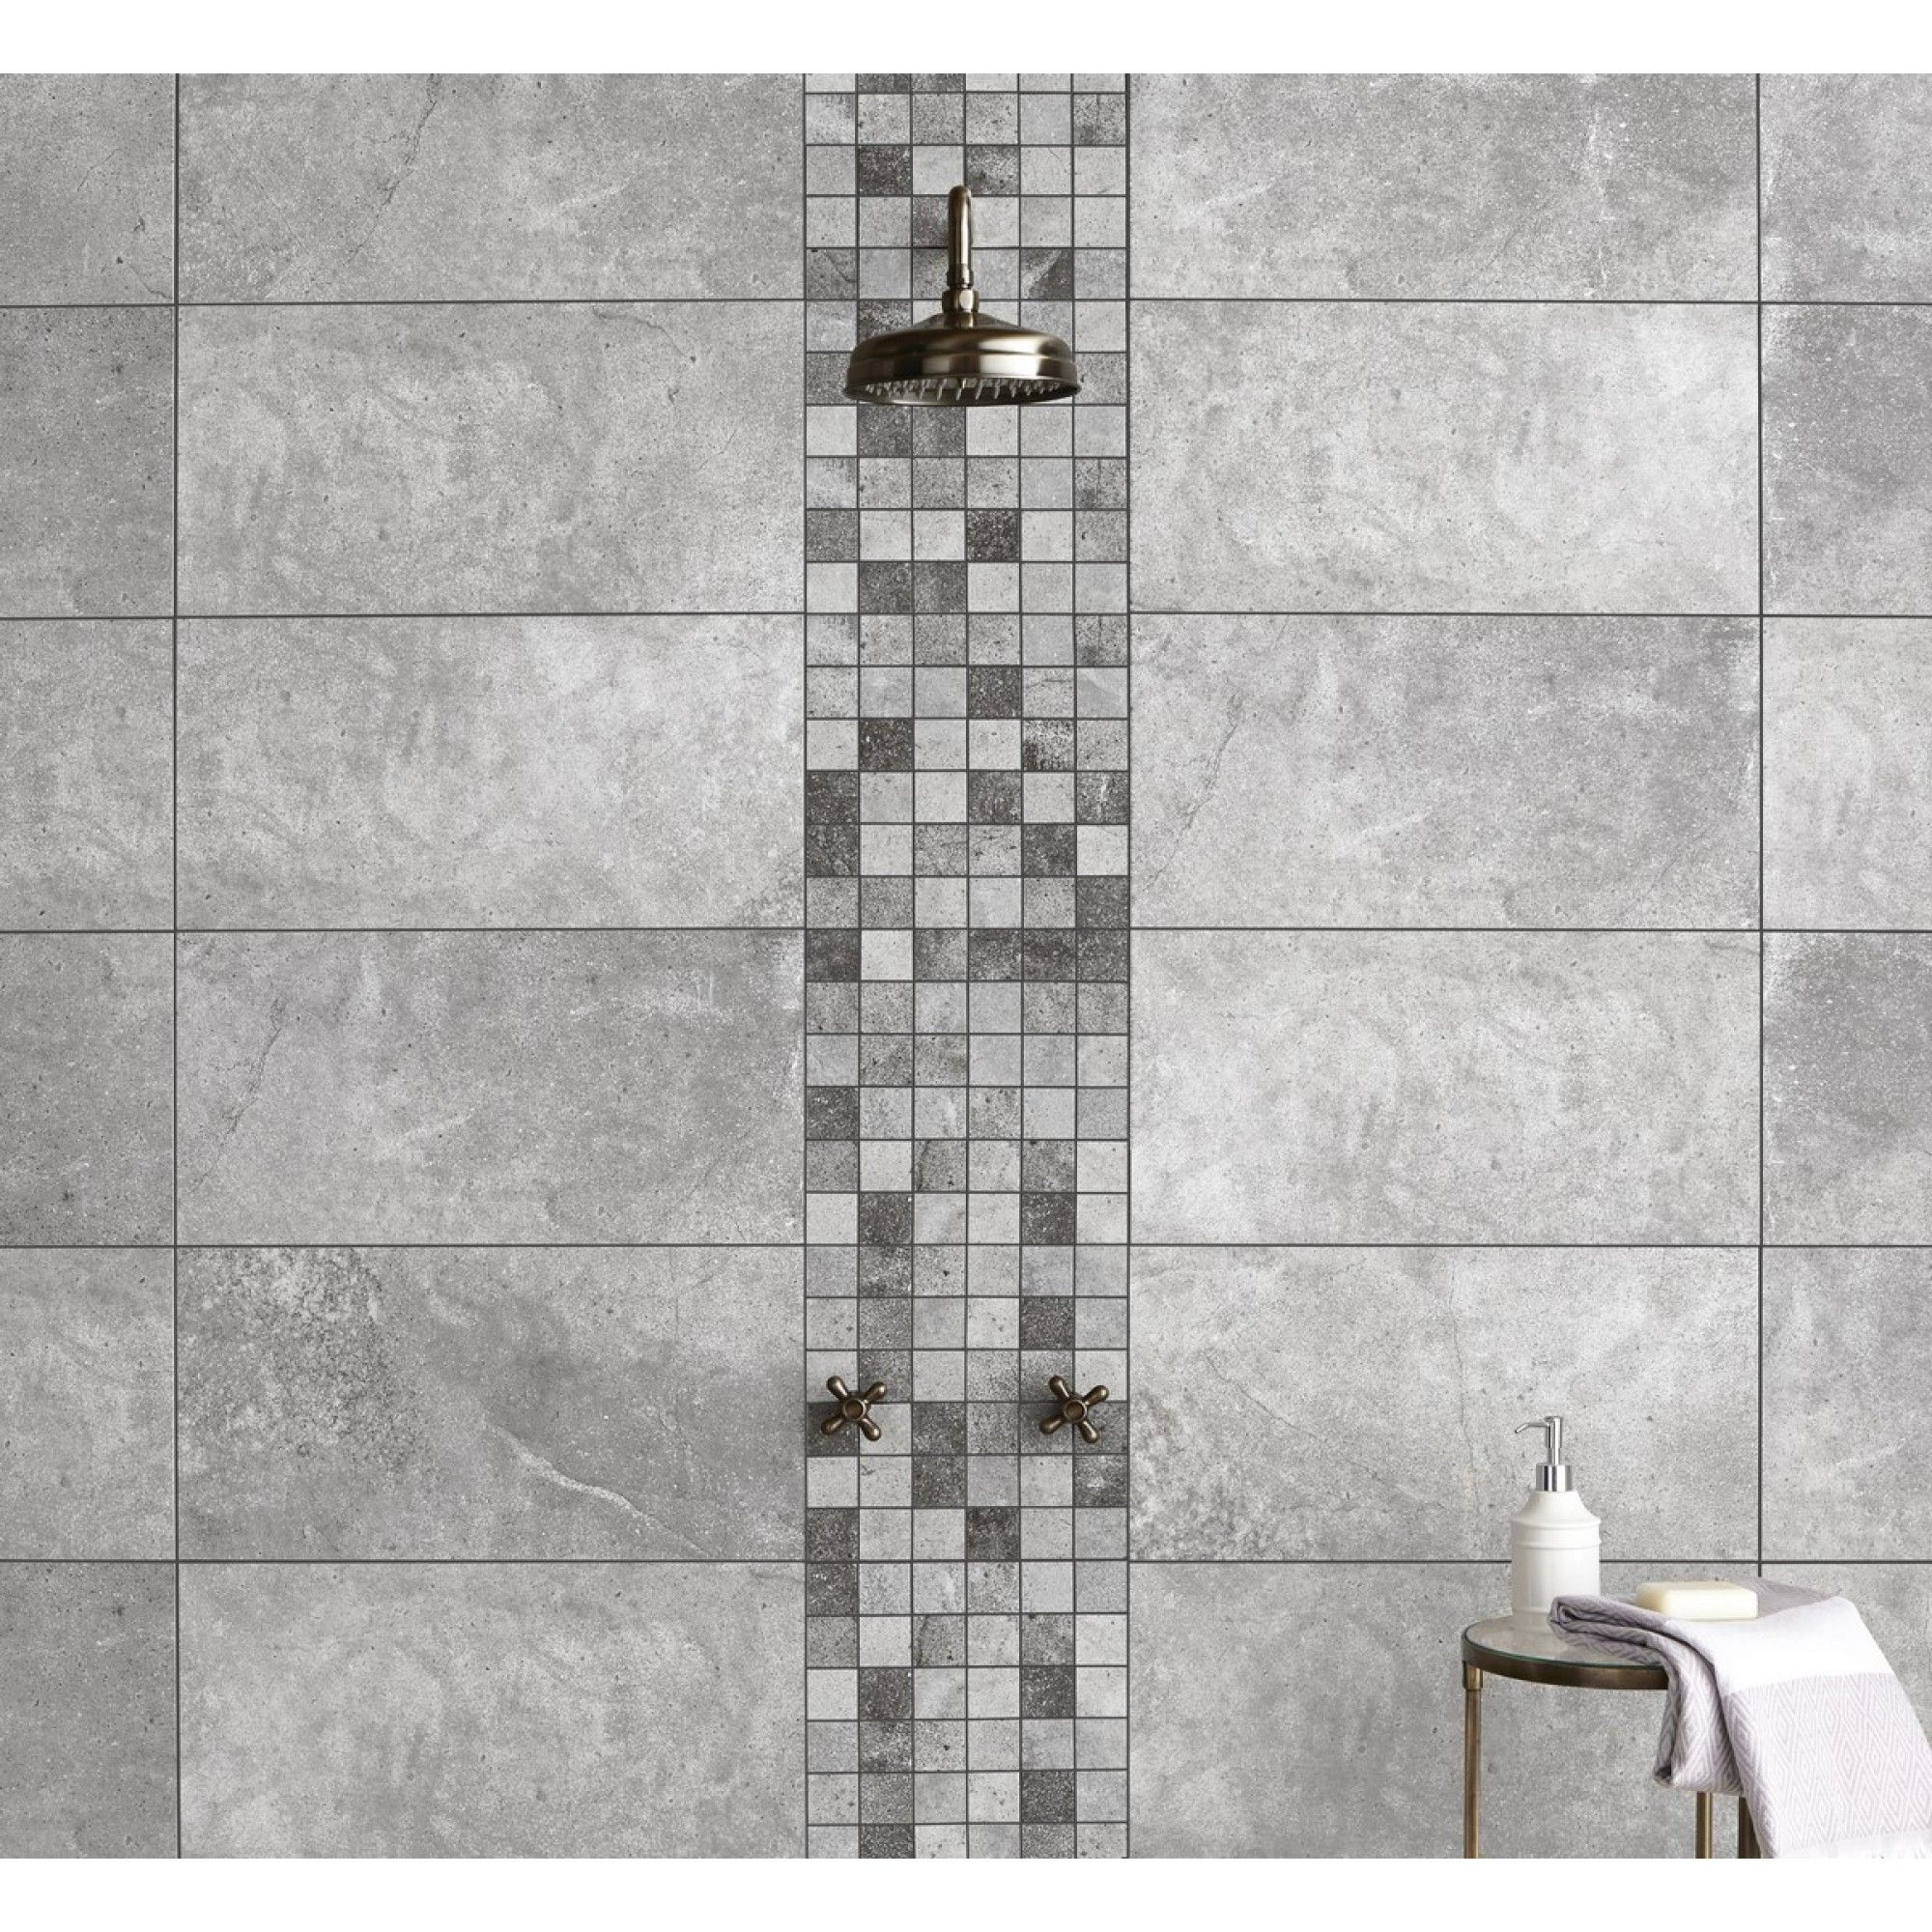 Toscana Silver Rectified Wall And Floor Tile | Silver walls, Walls ...